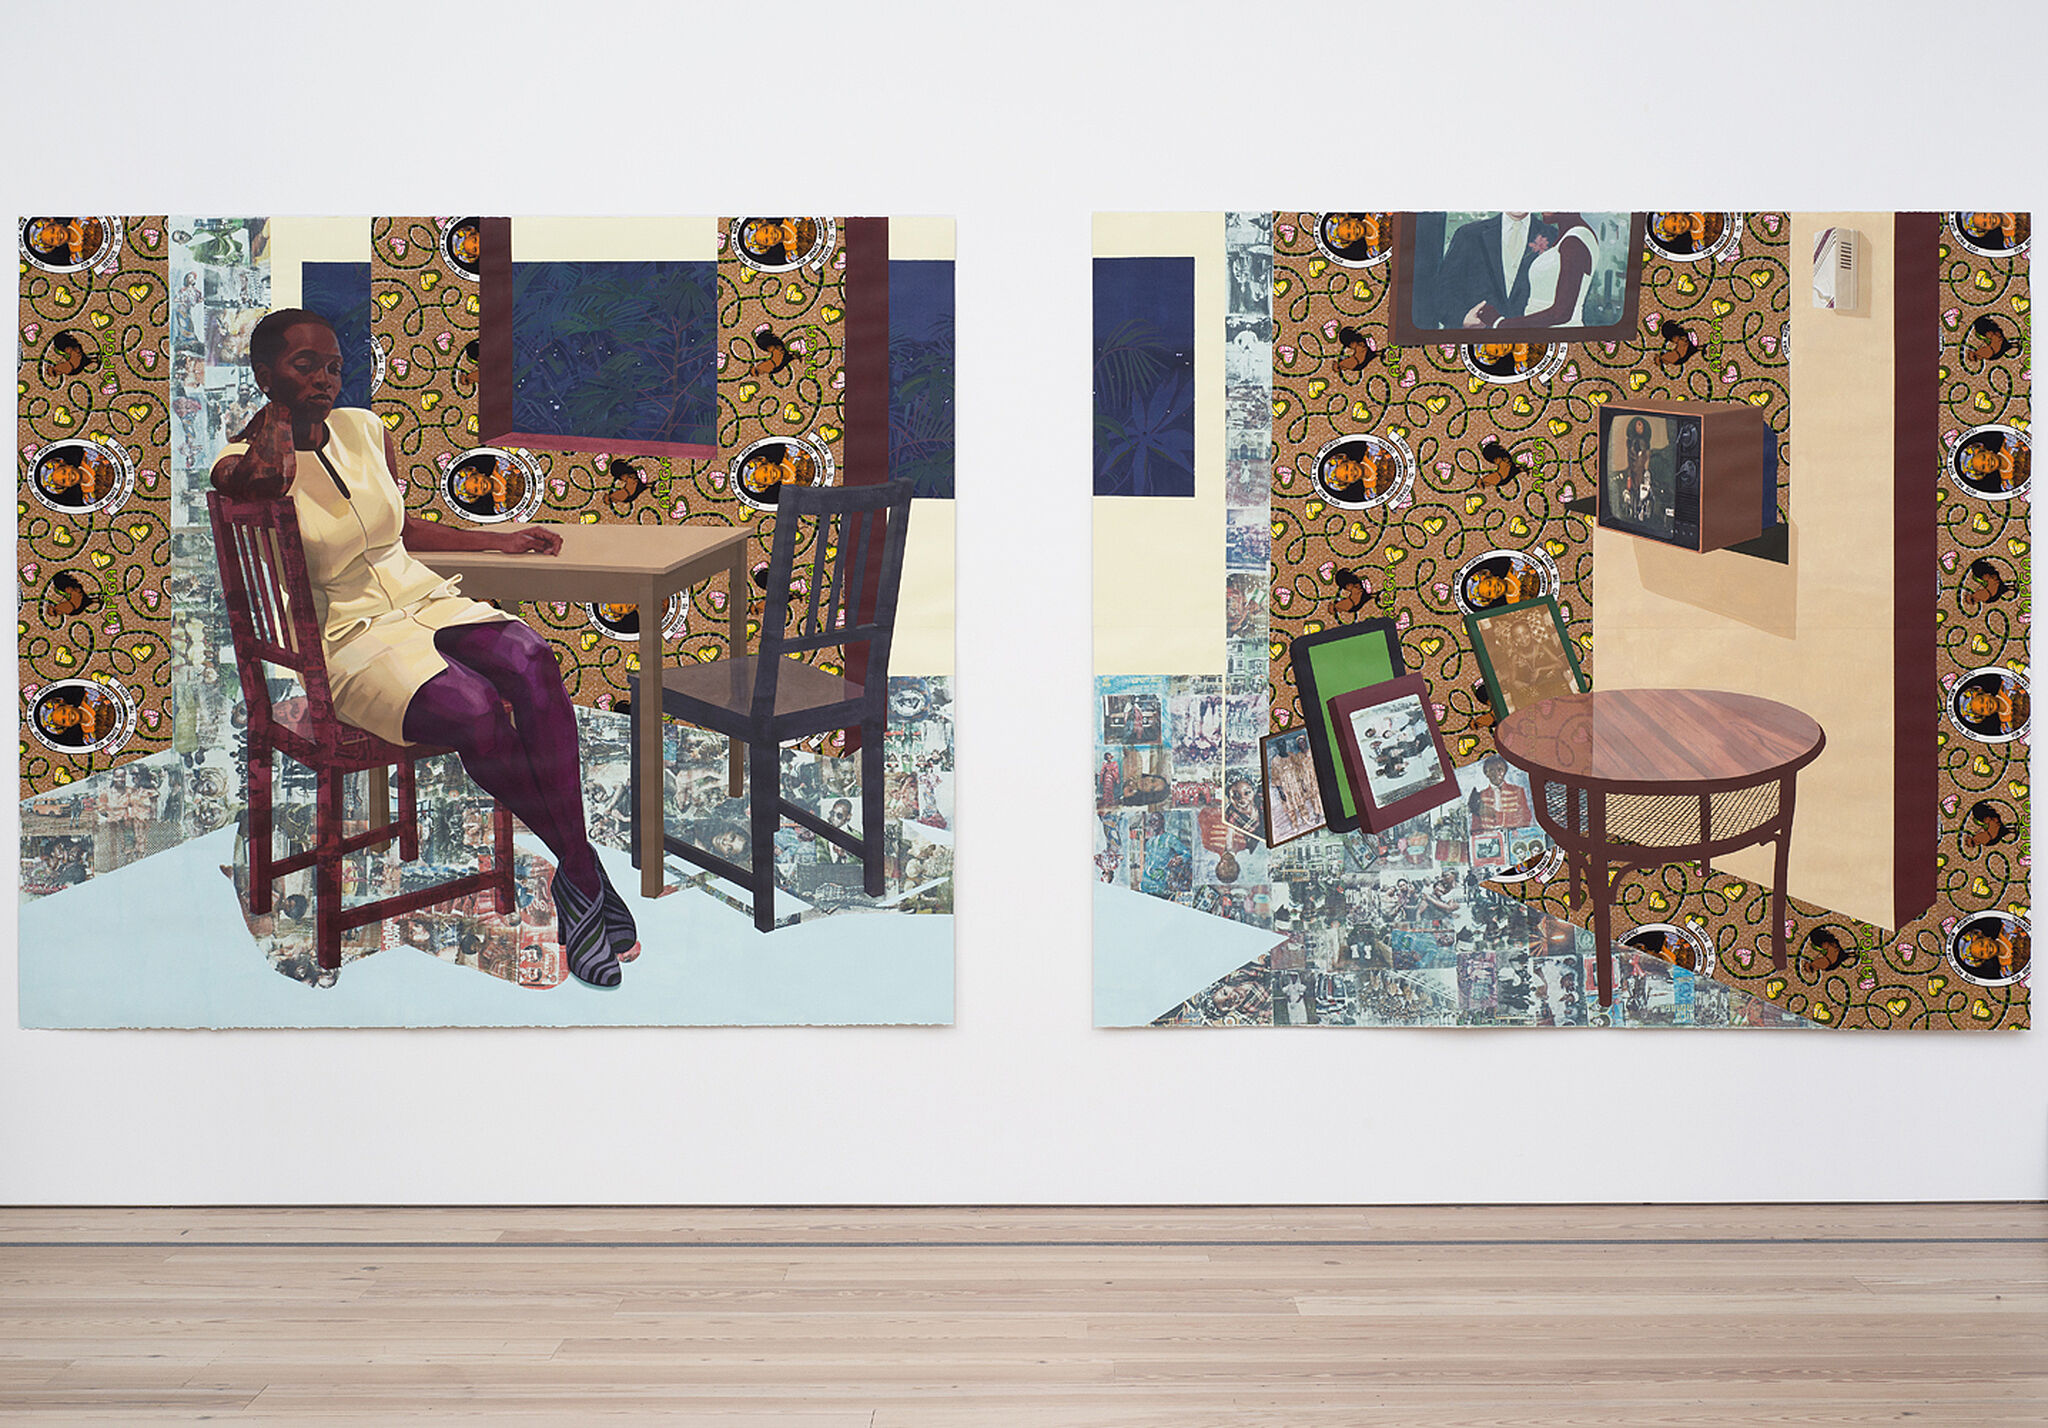 A collage of a woman sitting at a table next to a collage of an empty table with portraits on the wall in the background.